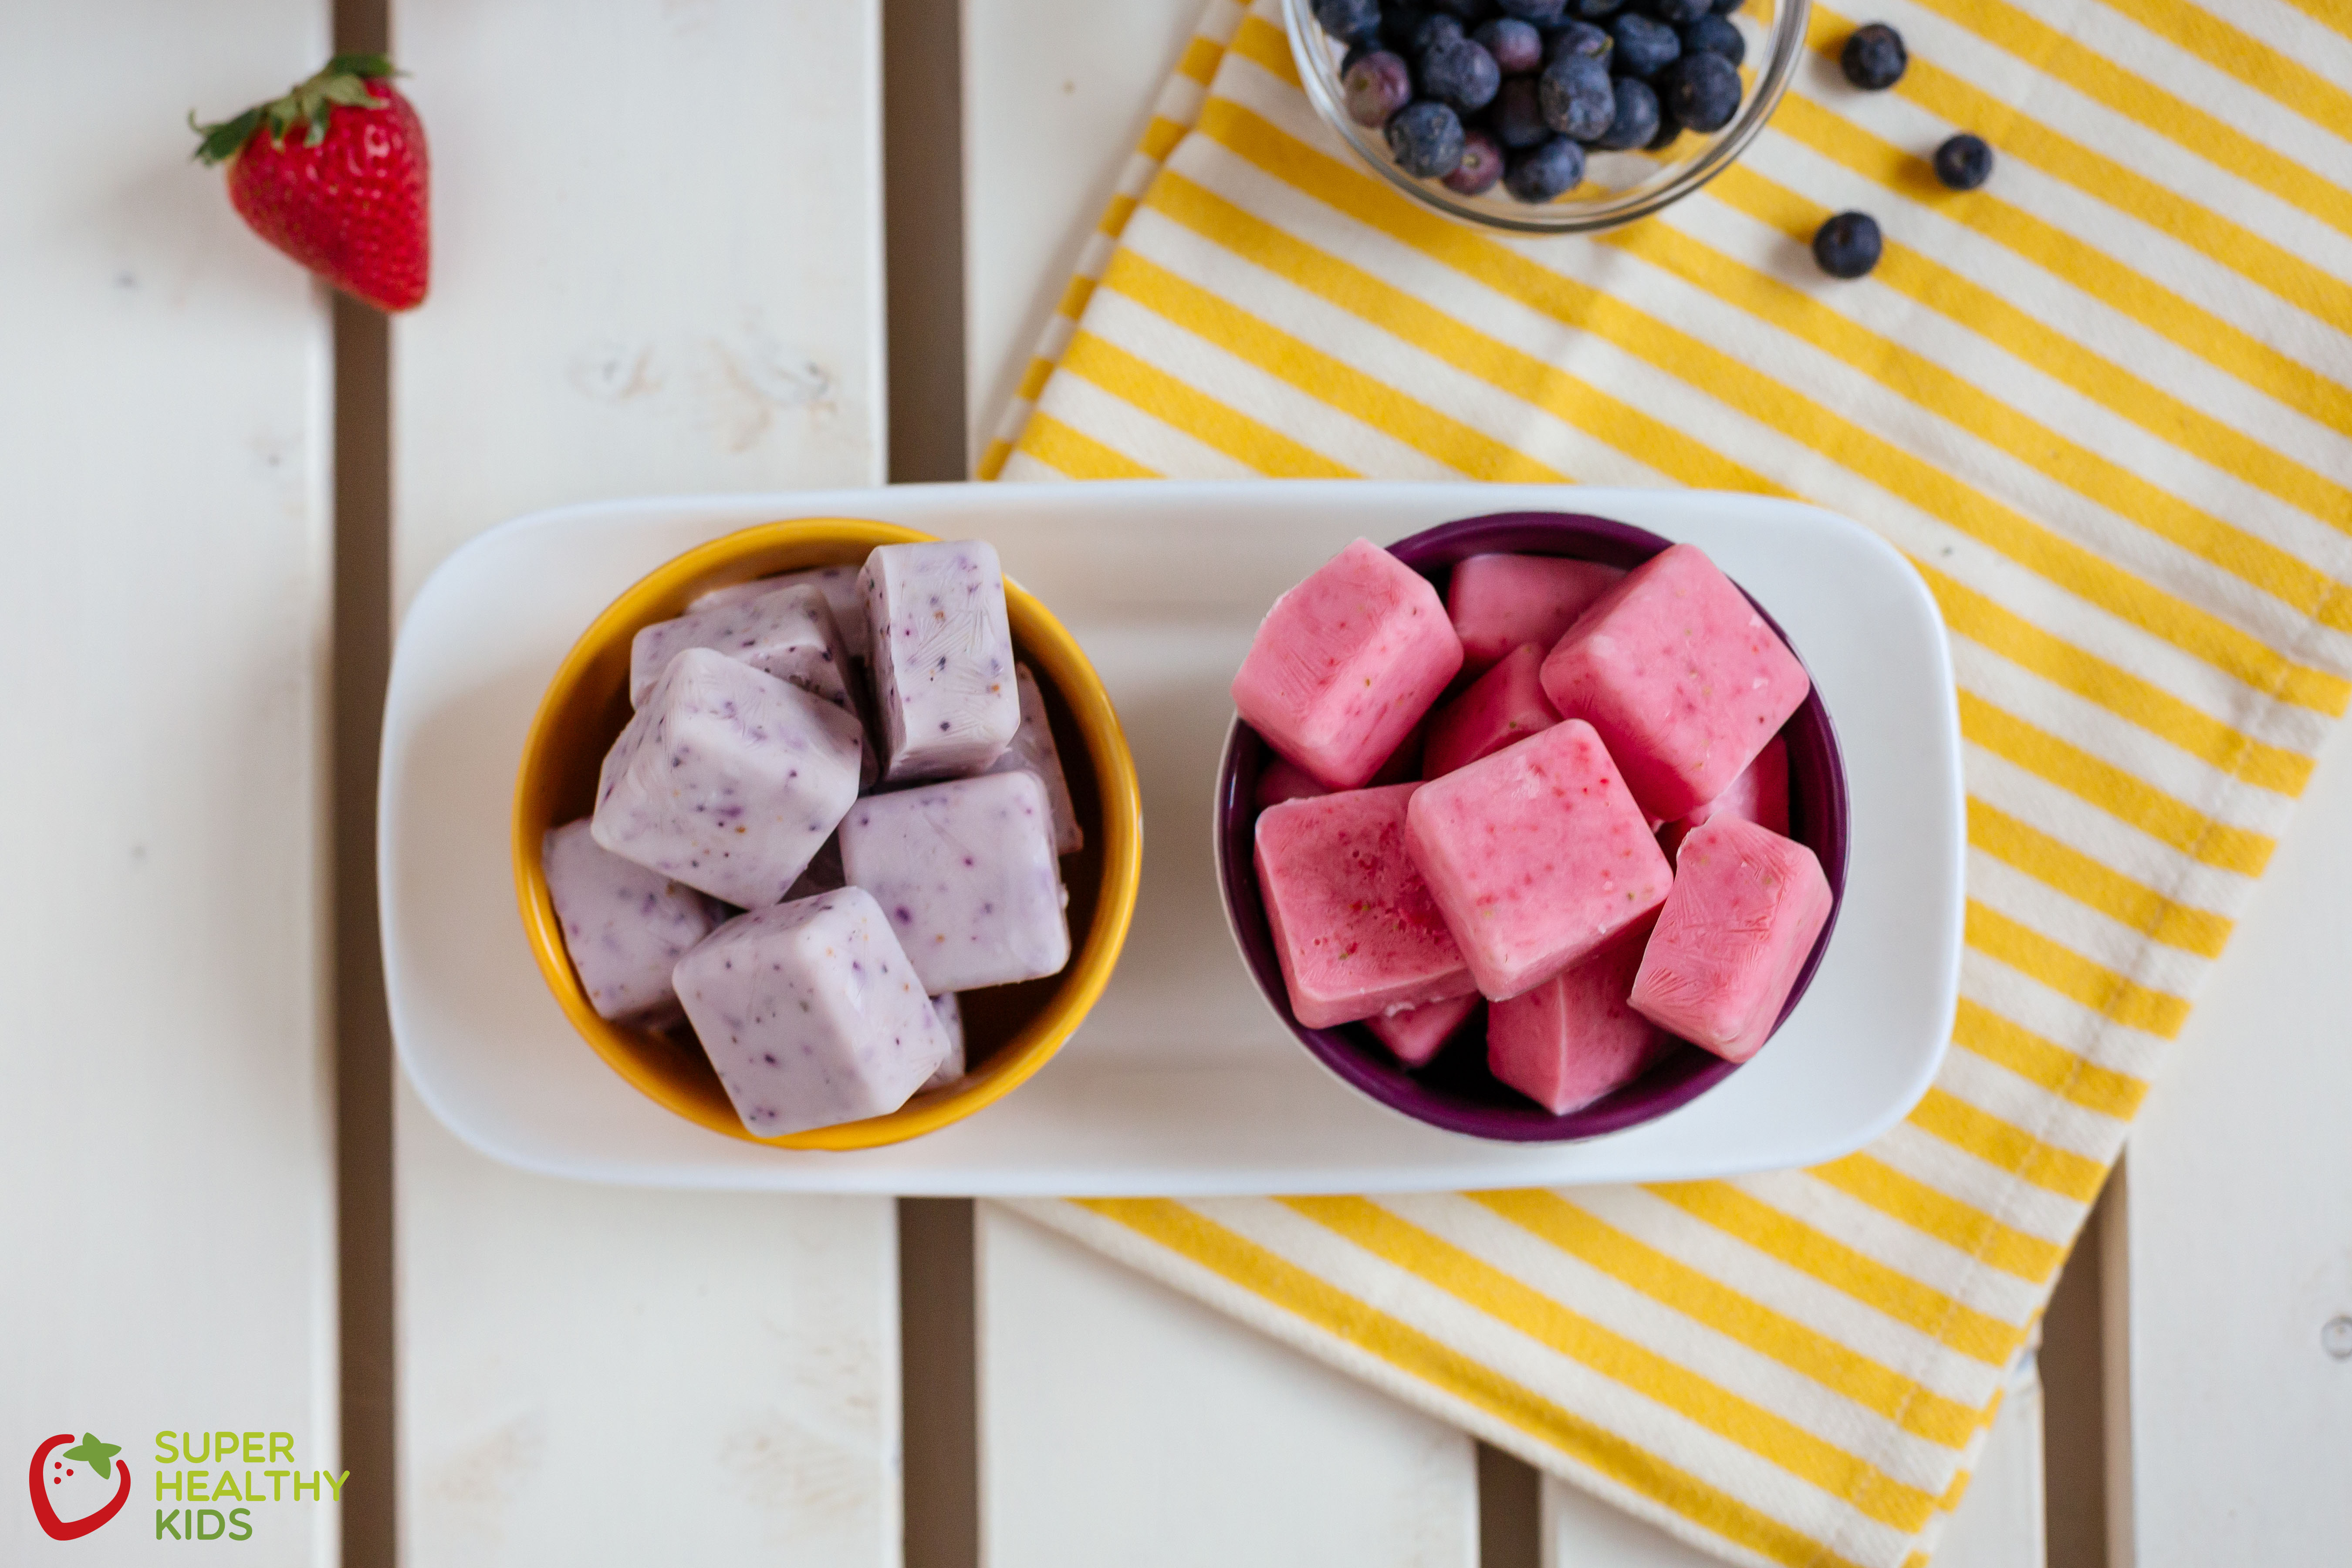 Froyo bites recipe healthy ideas for kids froyo bites recipe forumfinder Choice Image